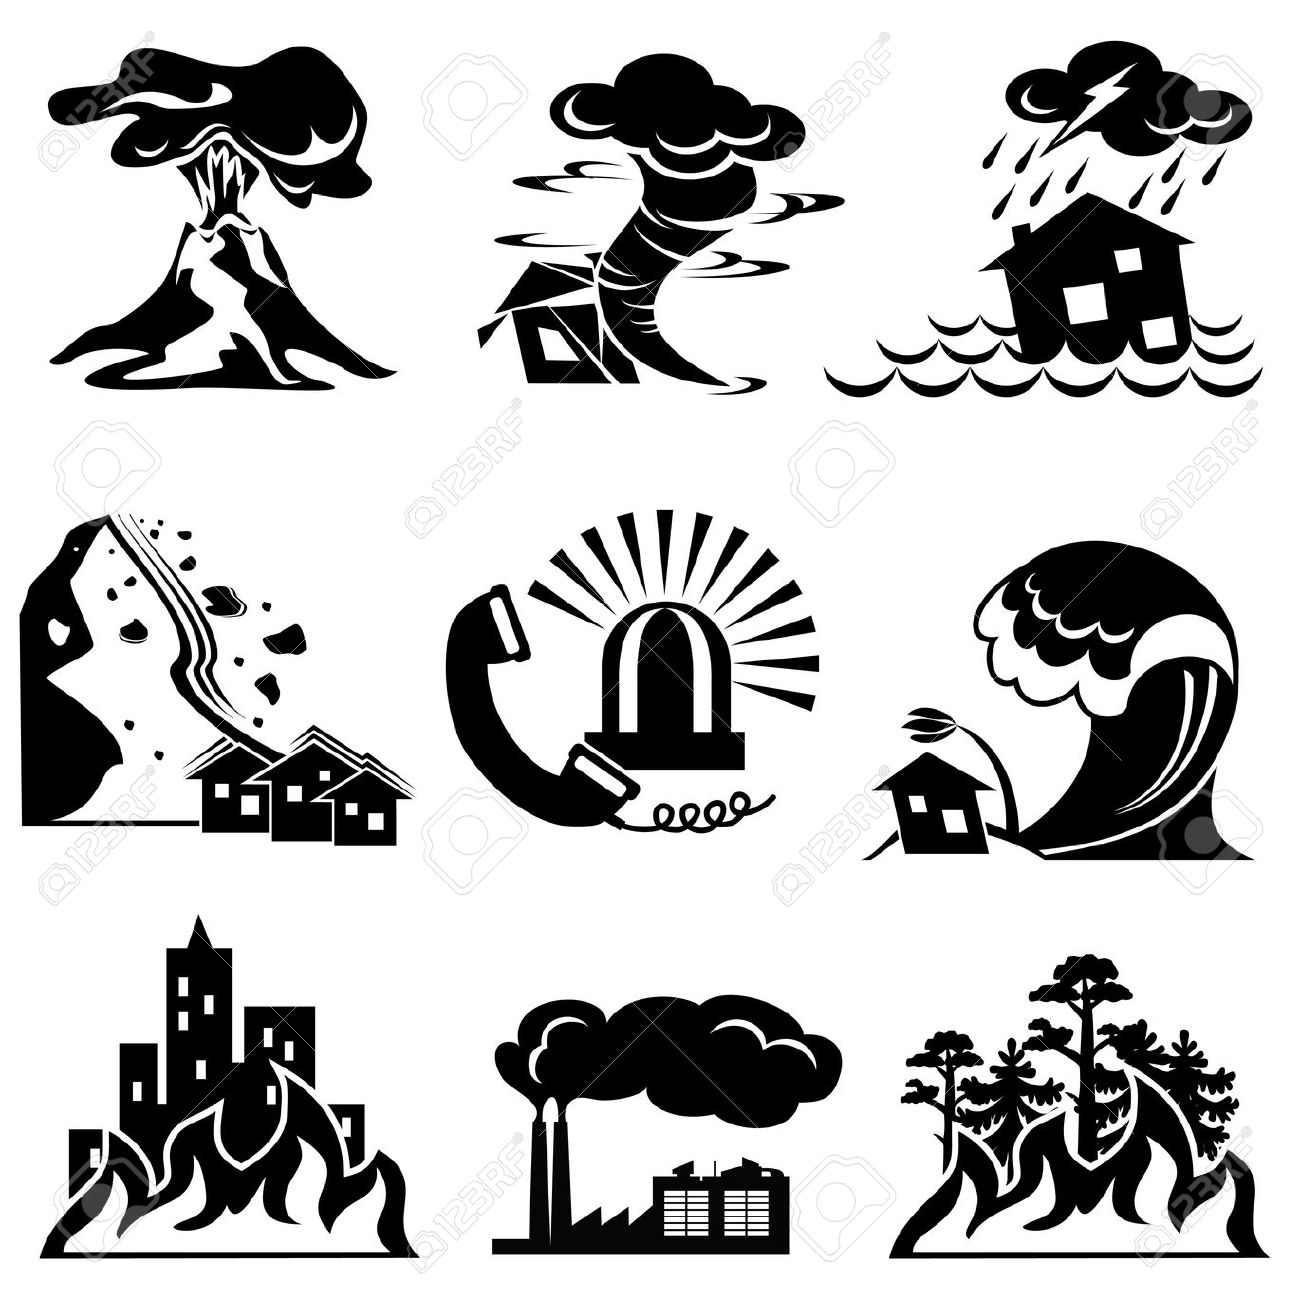 Disaster Clip Art Images | Clipart Panda - Free Clipart Images